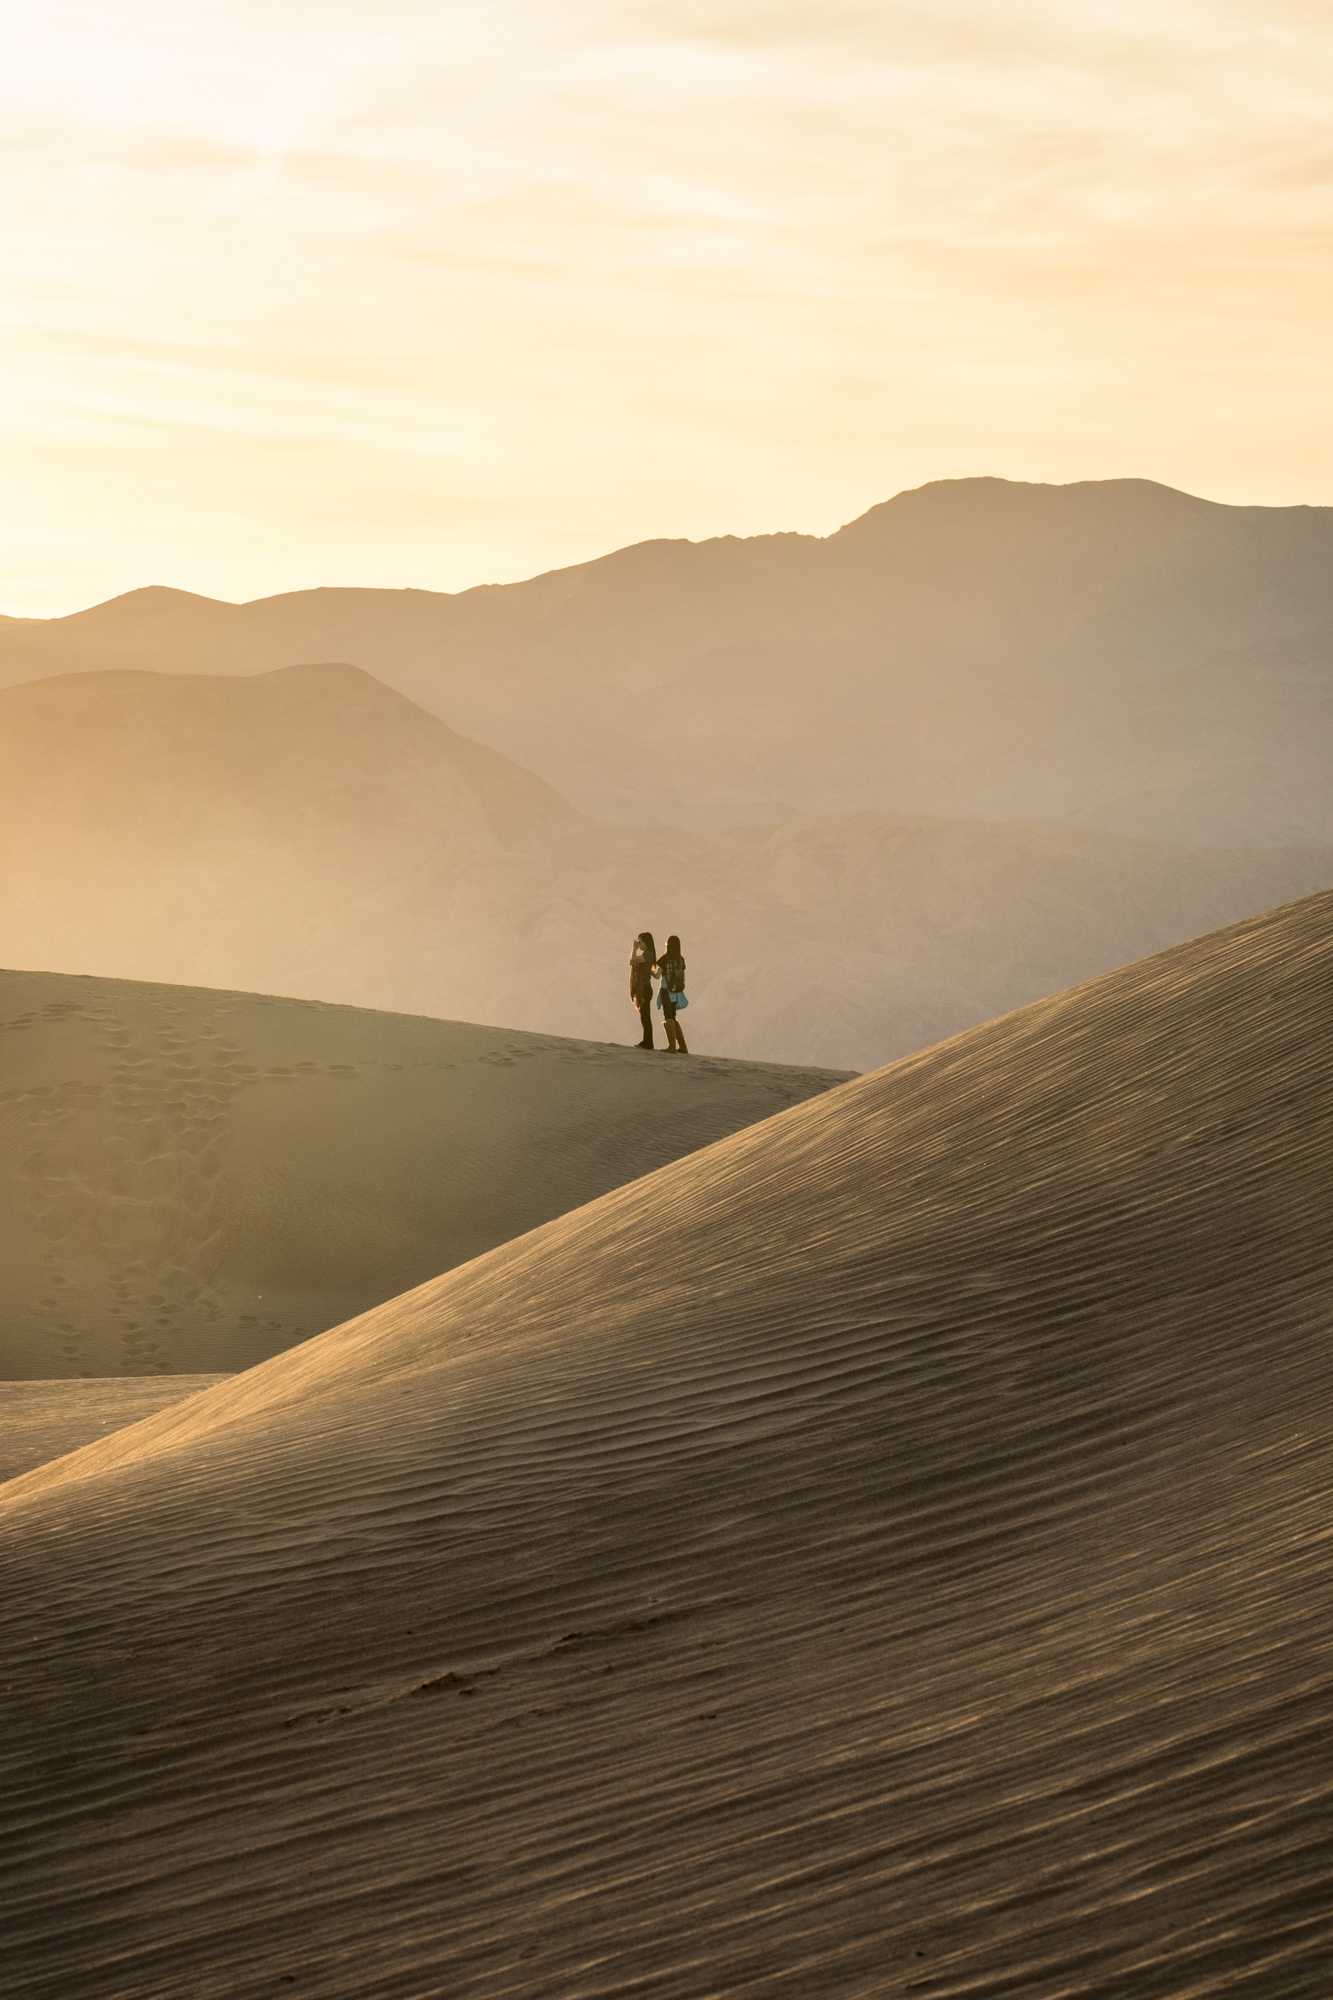 A special moment between two friends as the sun sets at Mesquite Sand Dunes.